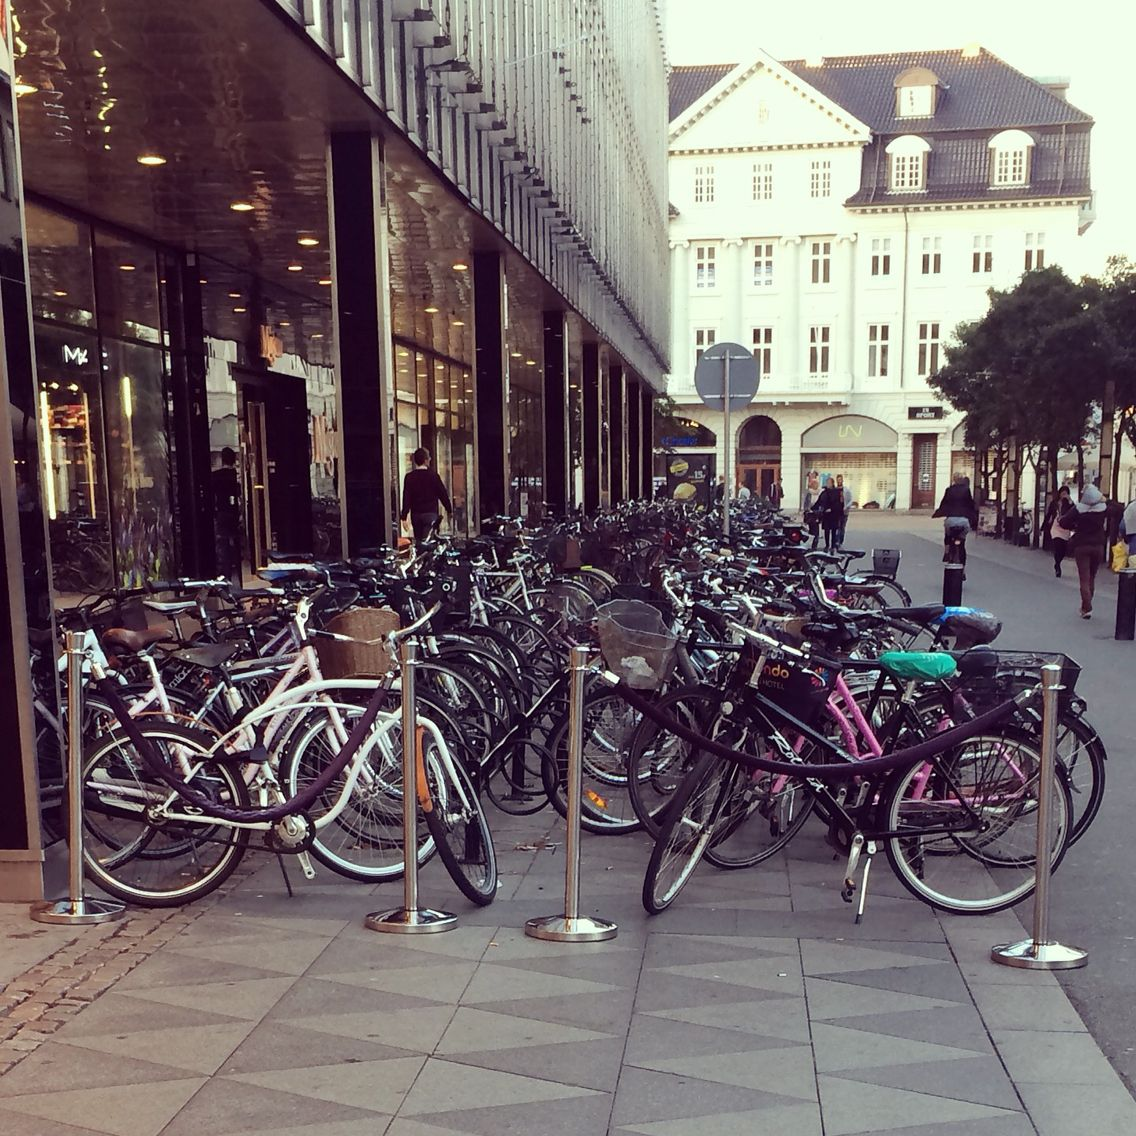 Bikes The Primary Means Of Transportation In Aarhus Denmark